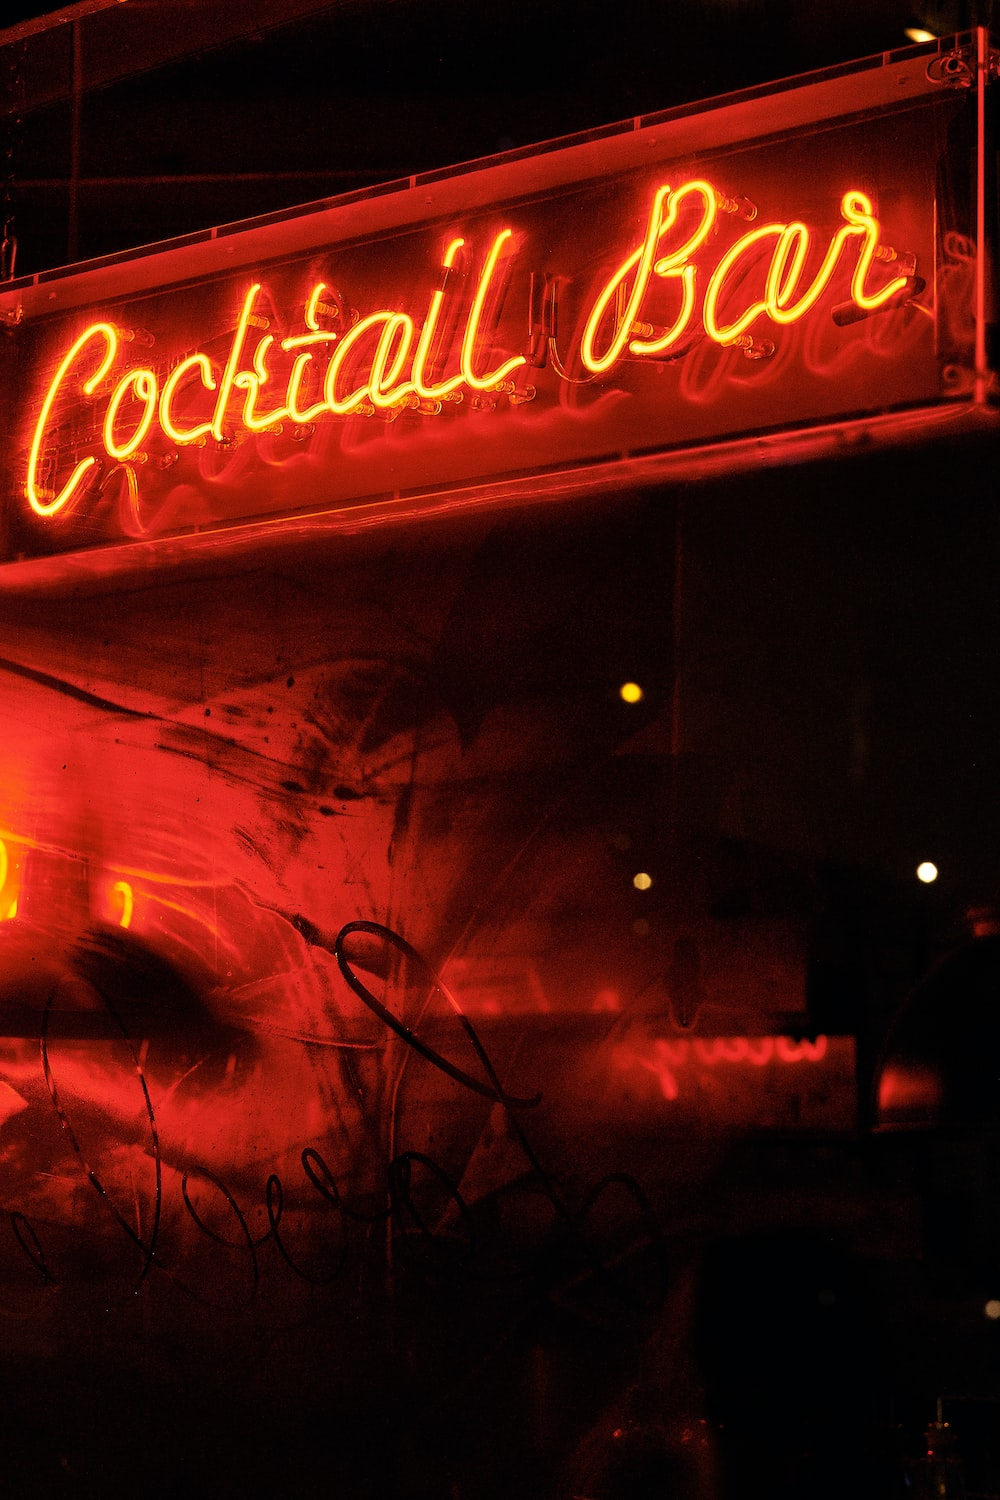 Coctail Bar neon light signage